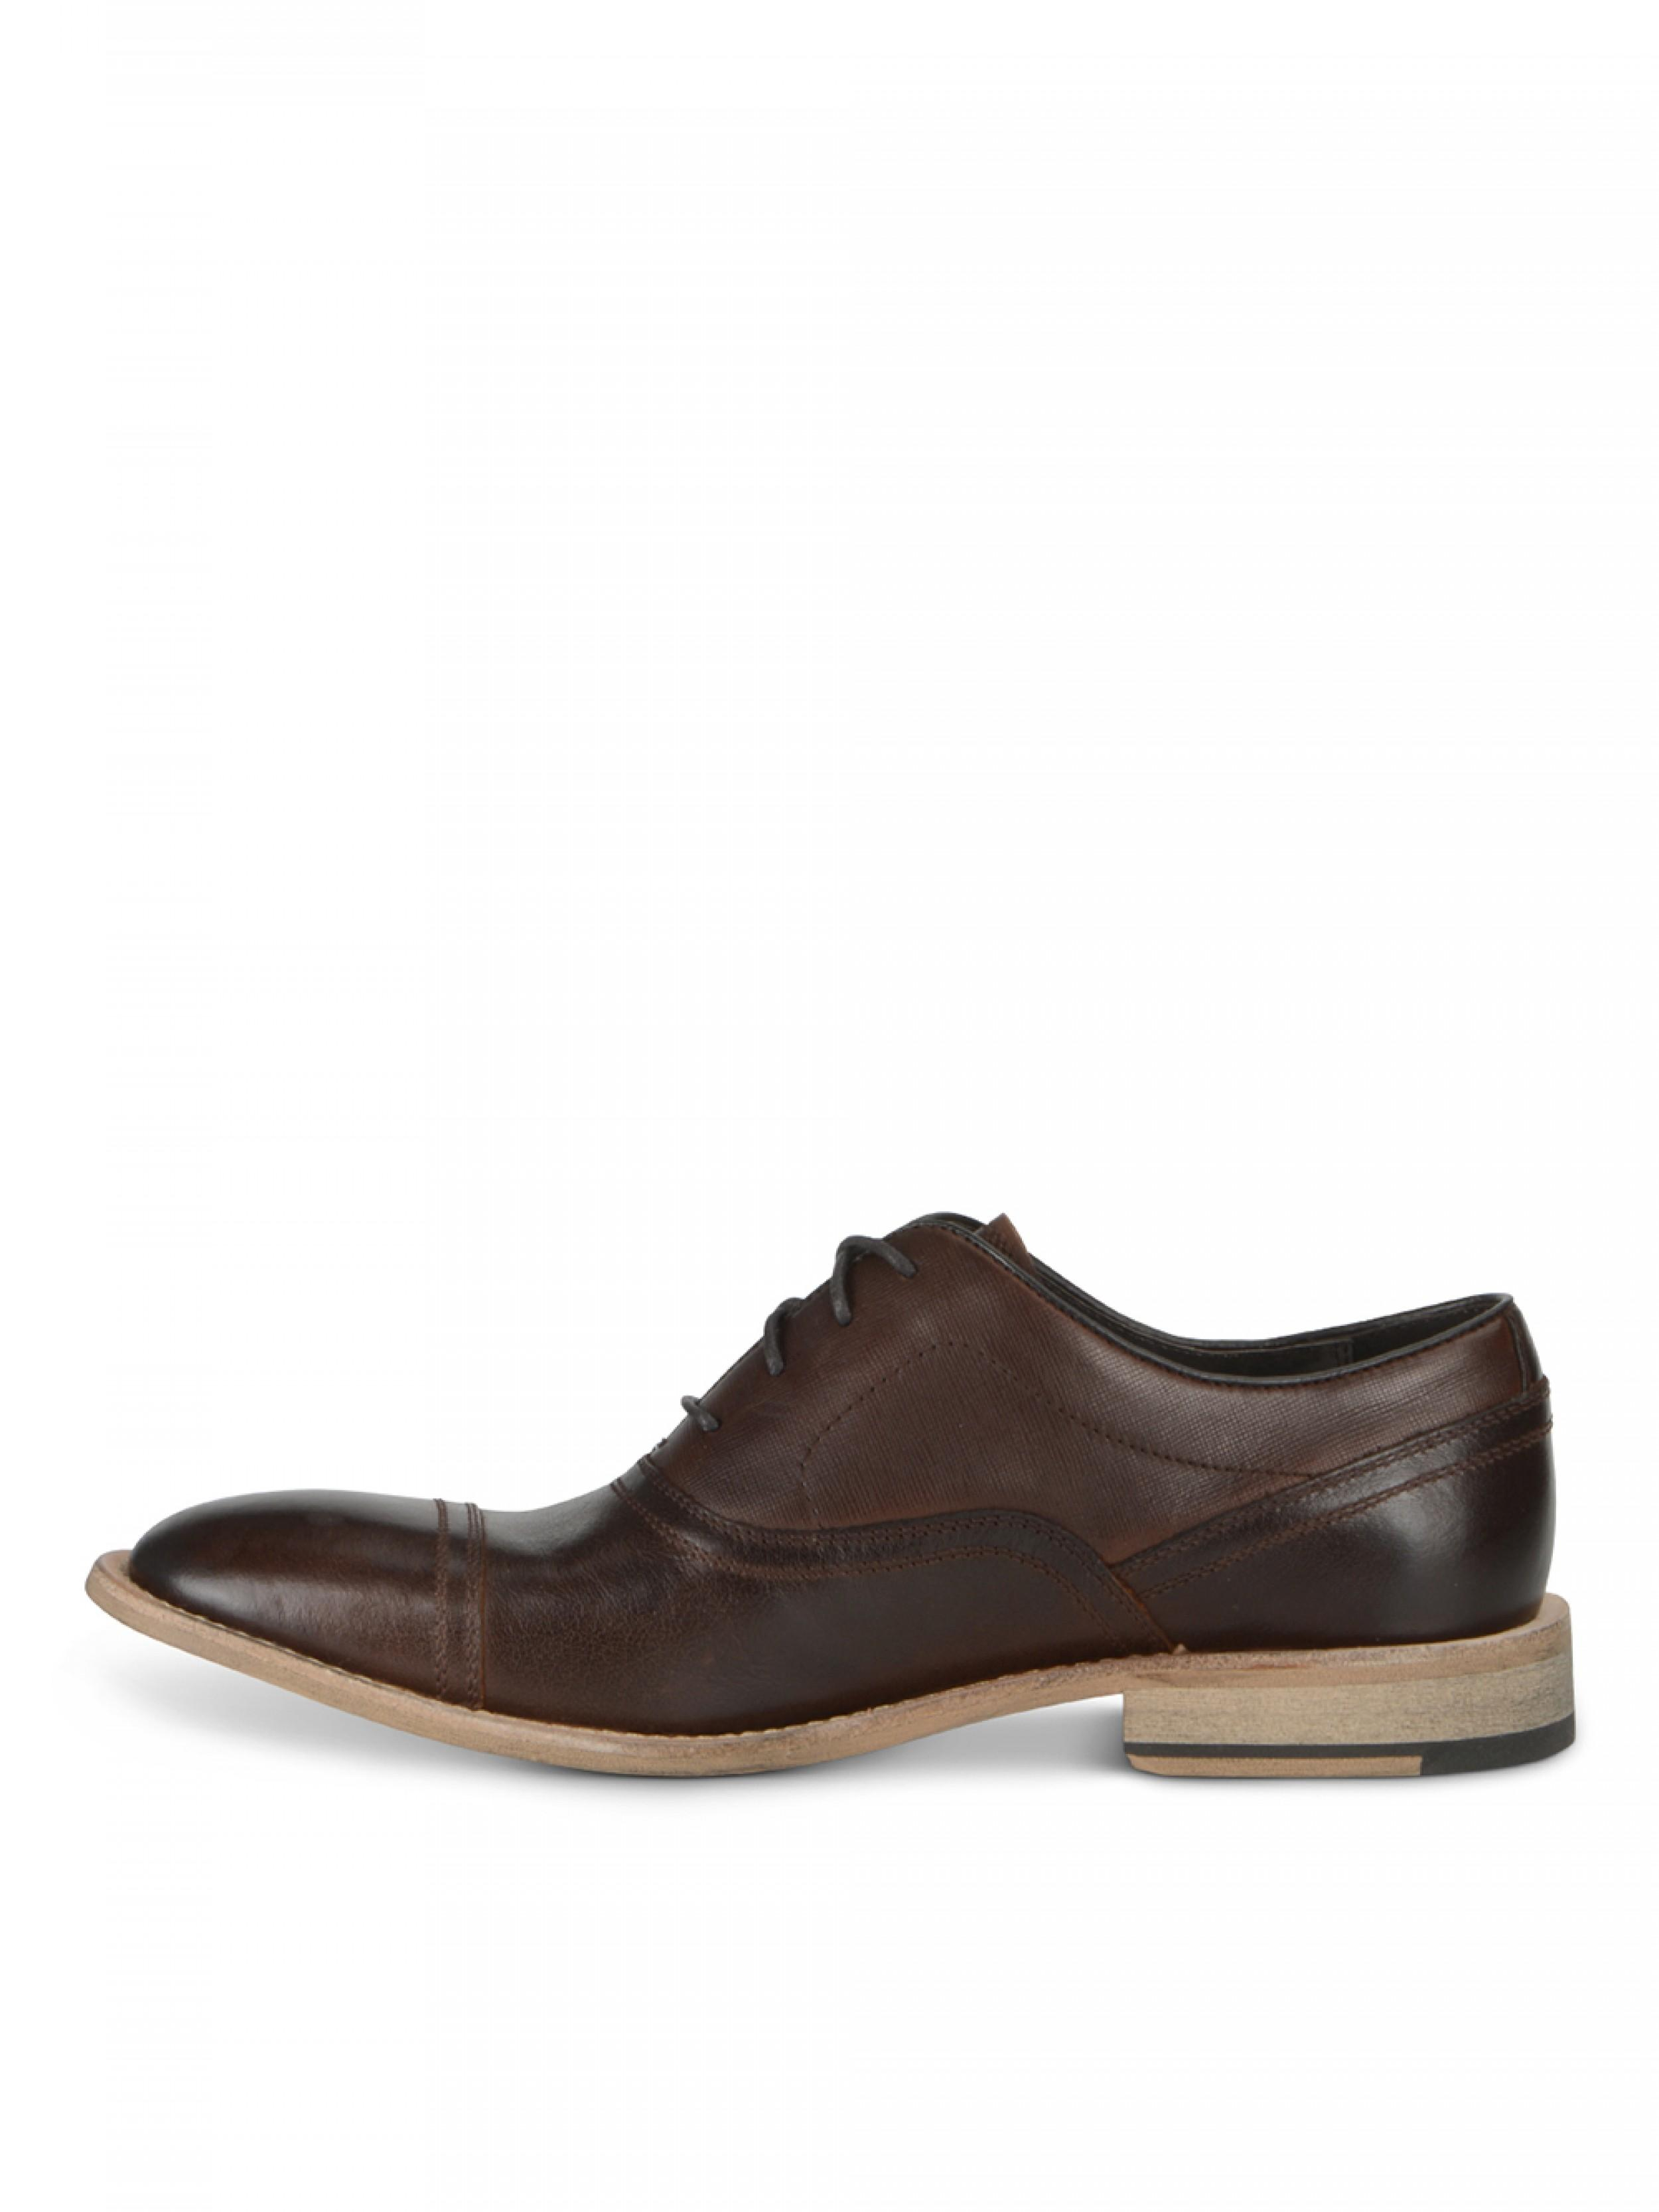 Andrew Hill Brown Leather Dress Shoes